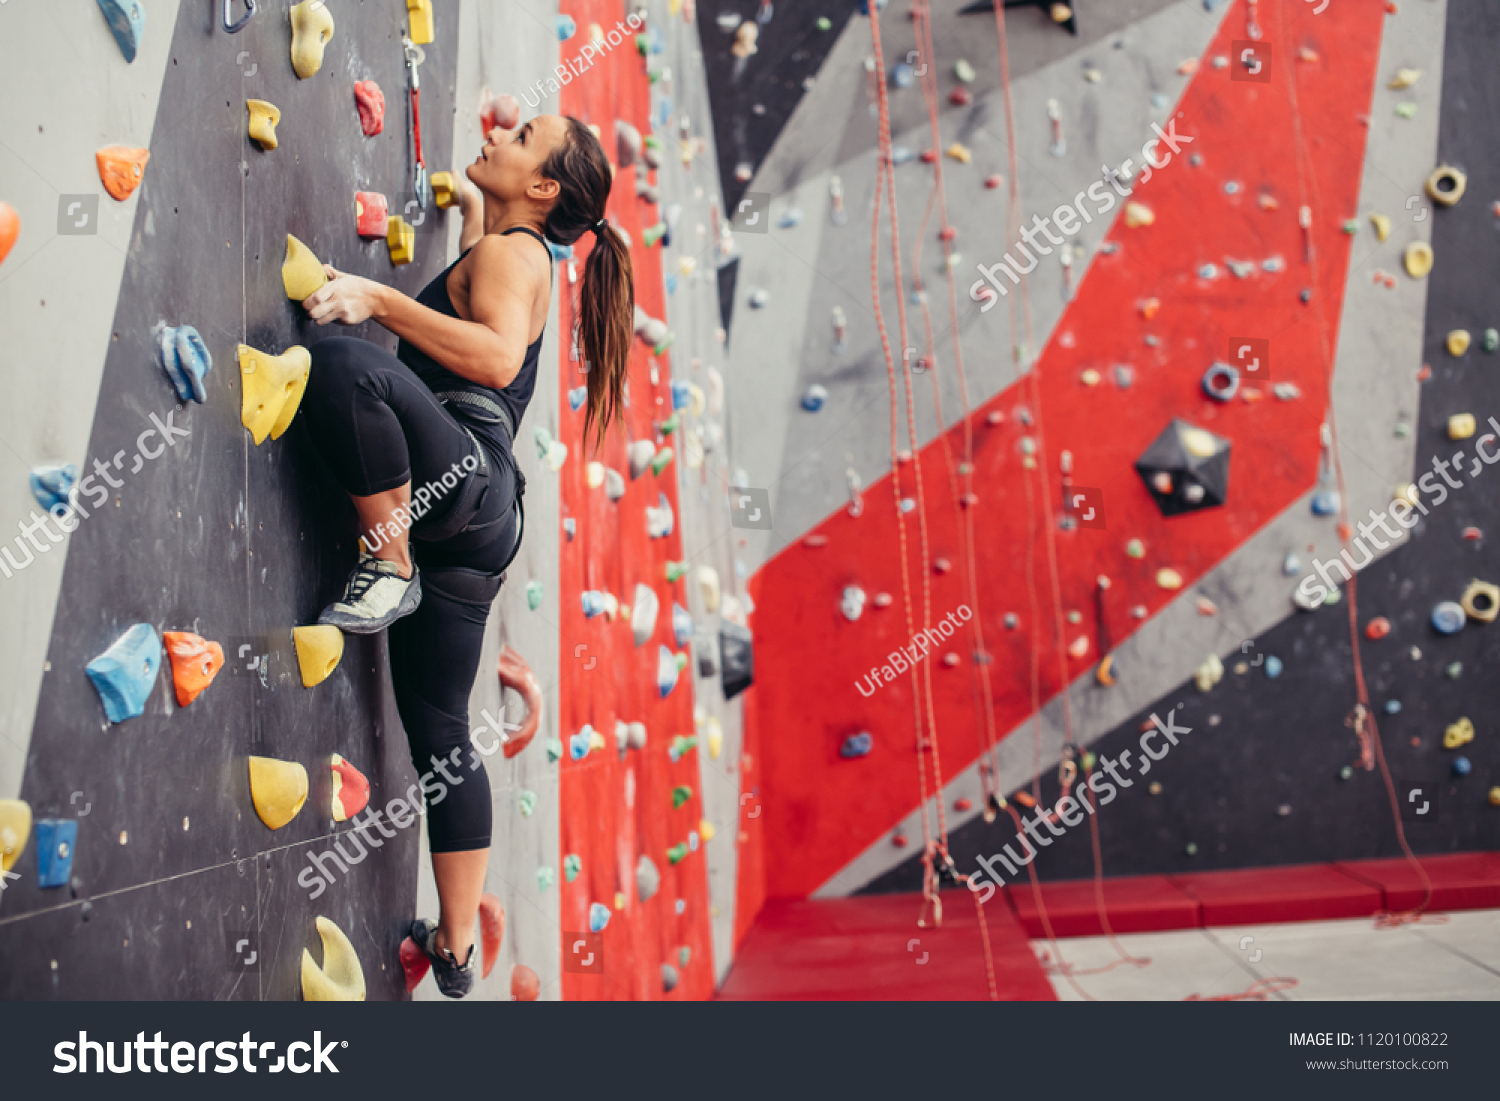 Rear view of sportwoman climber moving up on steep rock, climbing on artificial wall indoors. Extreme sports and bouldering concept.